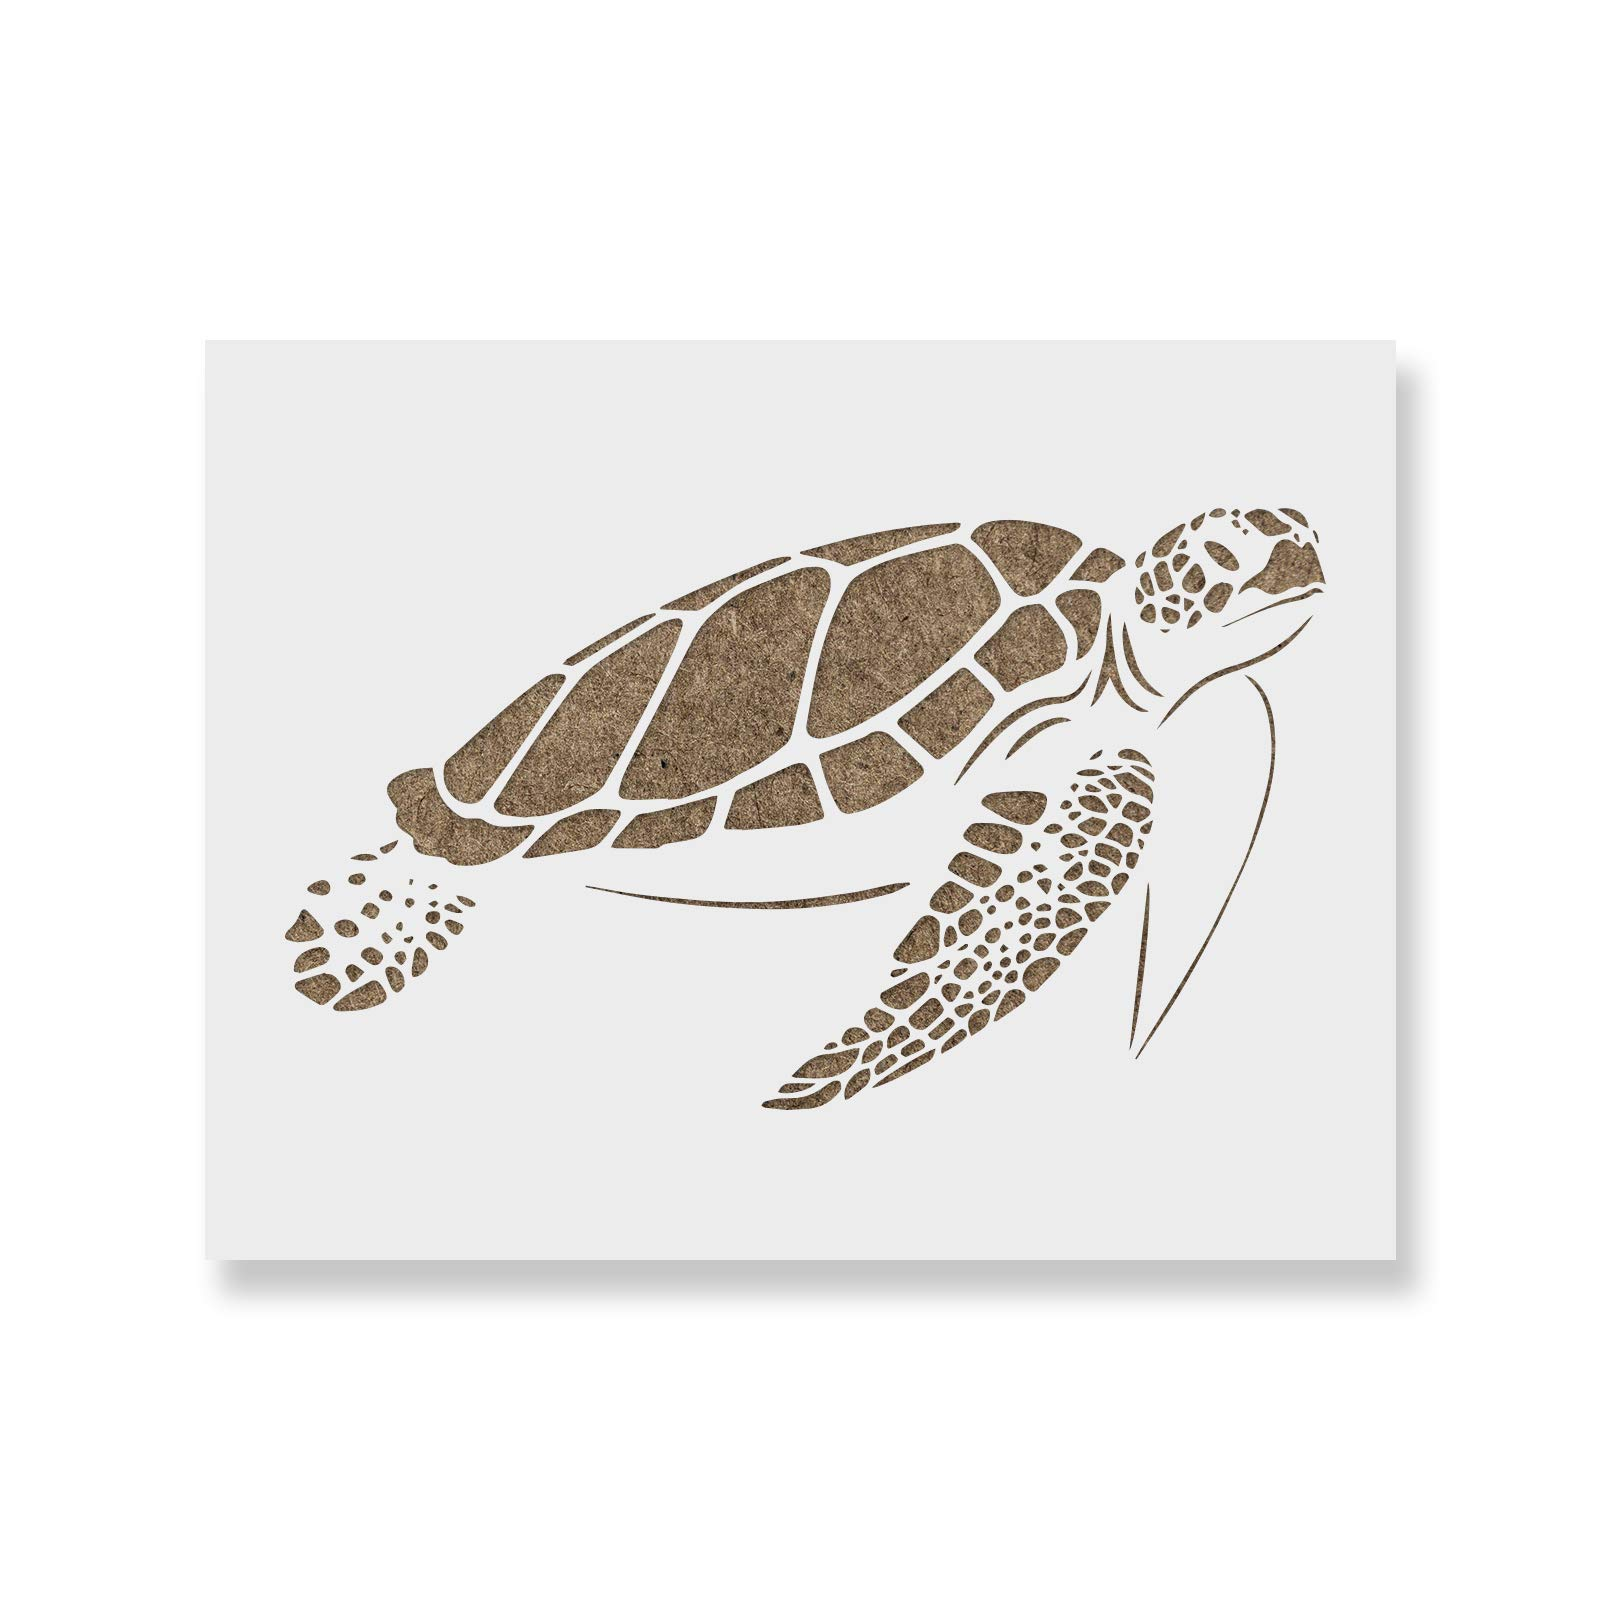 Sea Turtle Stencil Template - Reusable Stencil with Multiple Sizes Available